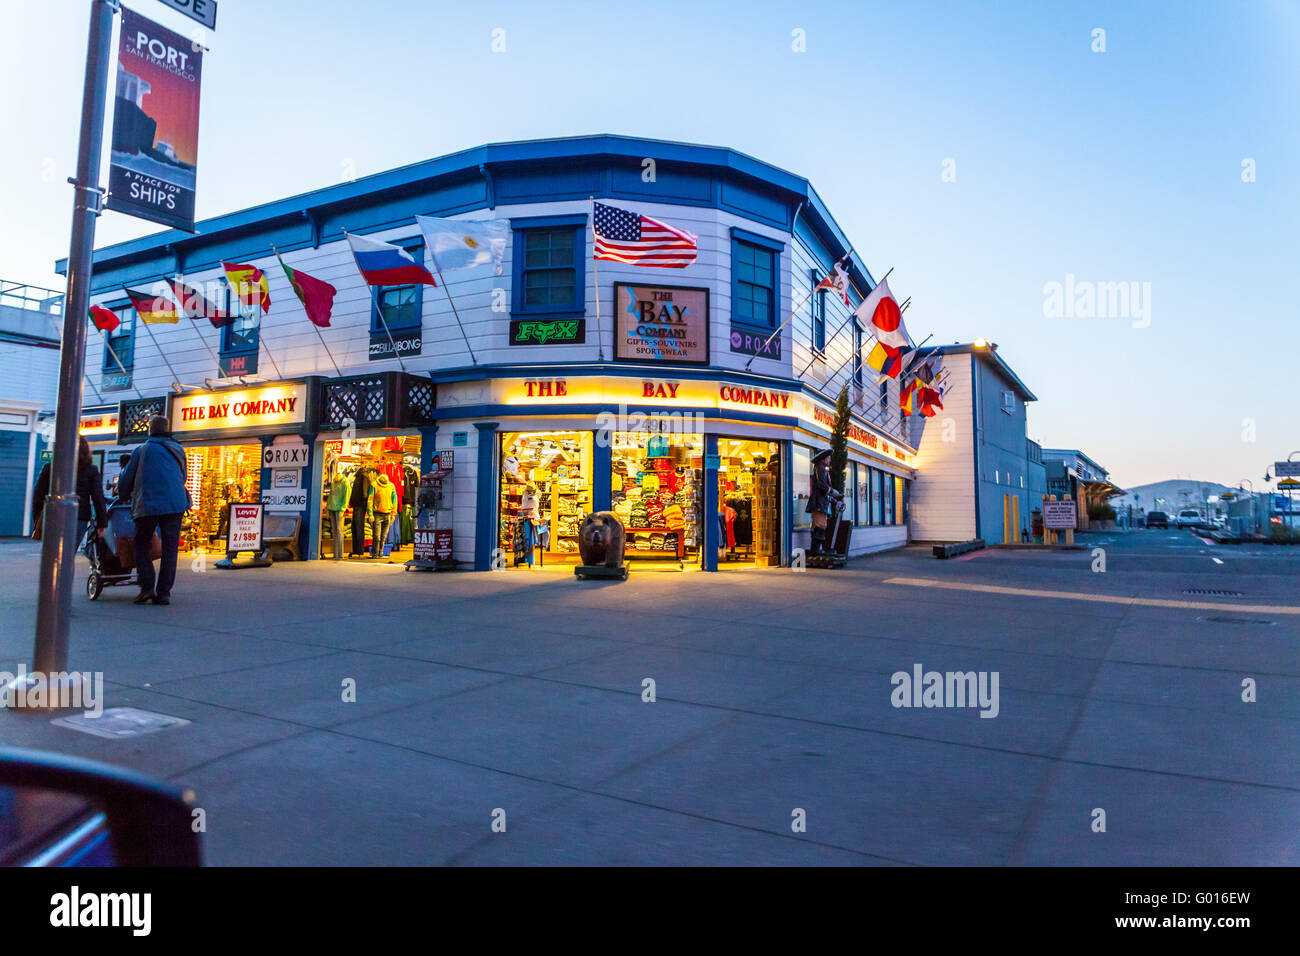 The Bay Company souvenir shop at Fisherman's wharf in San Francisco California - Stock Image